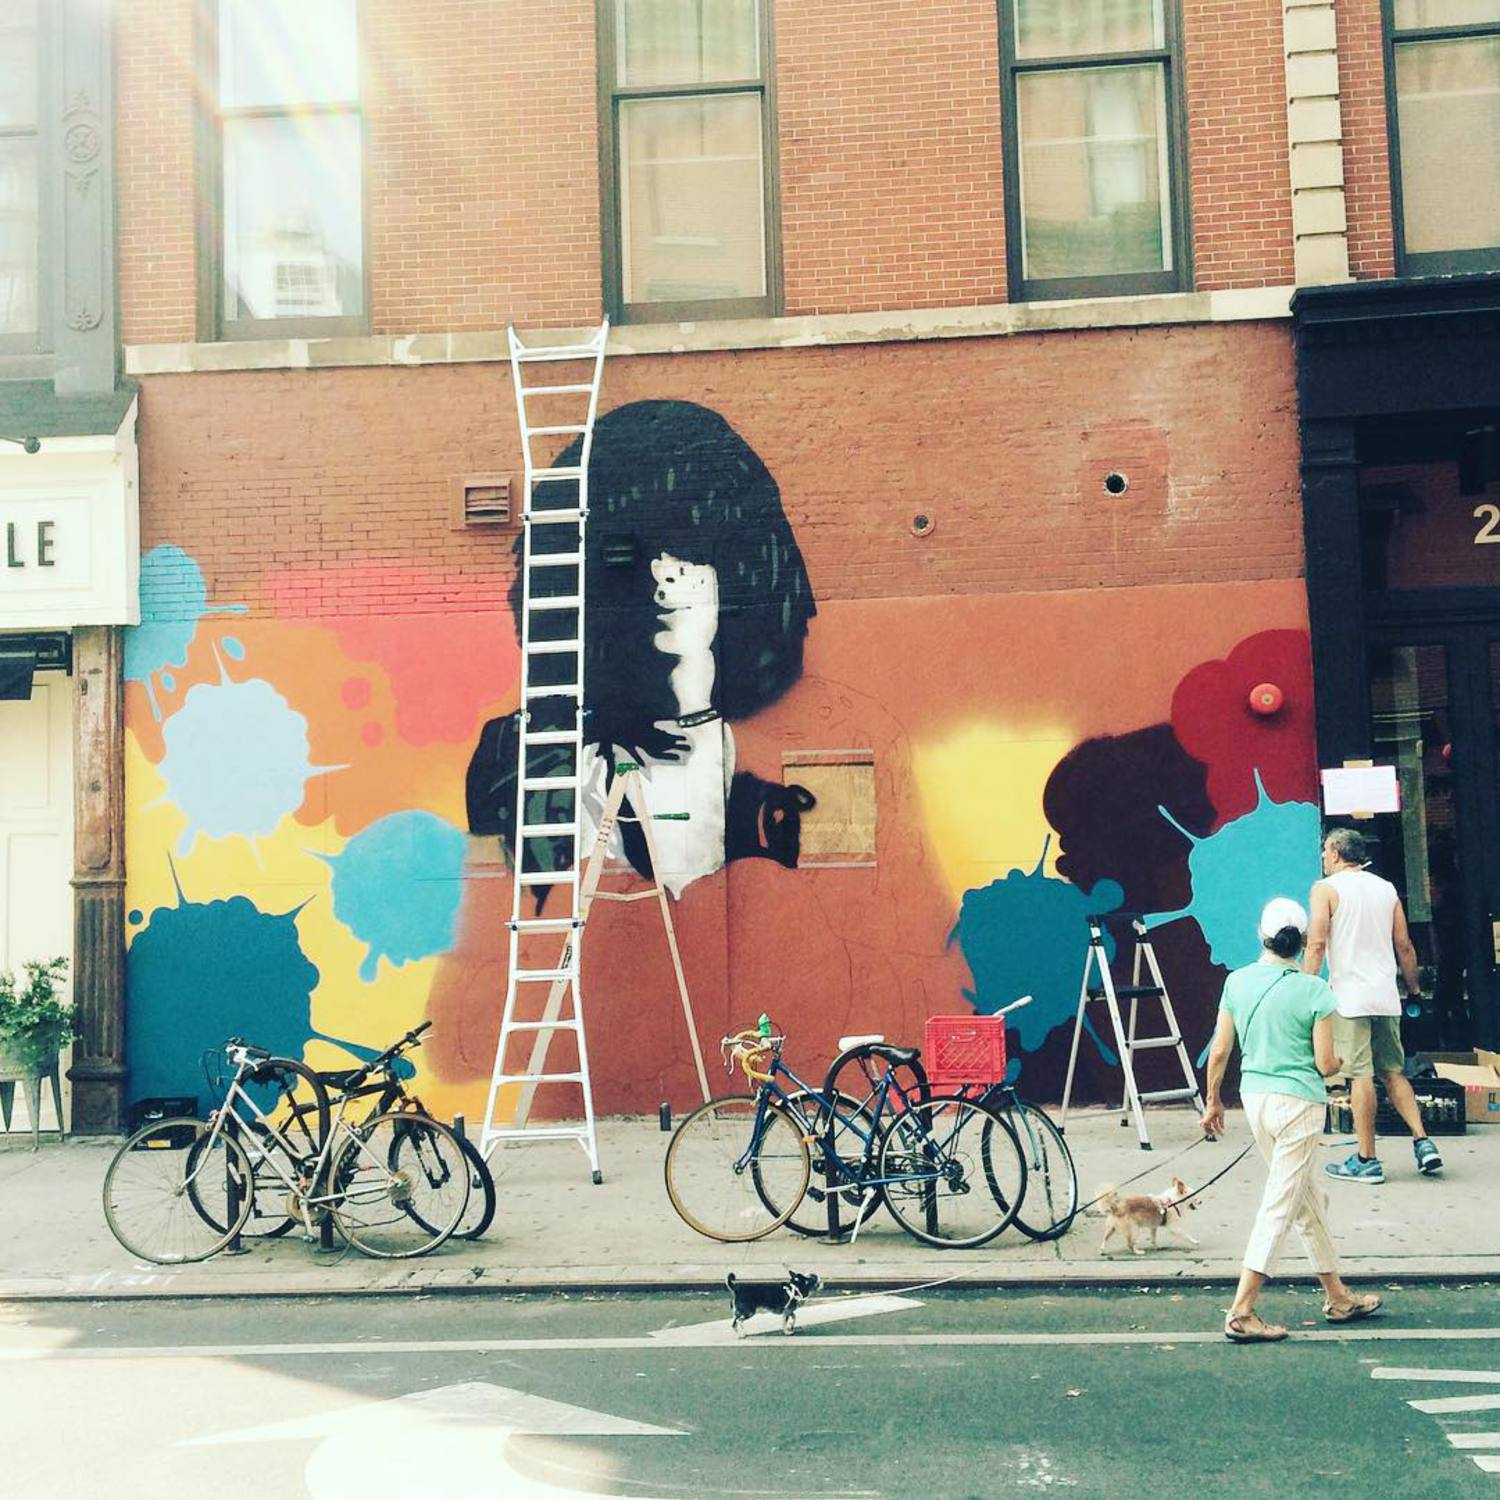 Kicking of Joey Ramone mural with @crashone @thelisaprojectnyc @lomanartfest